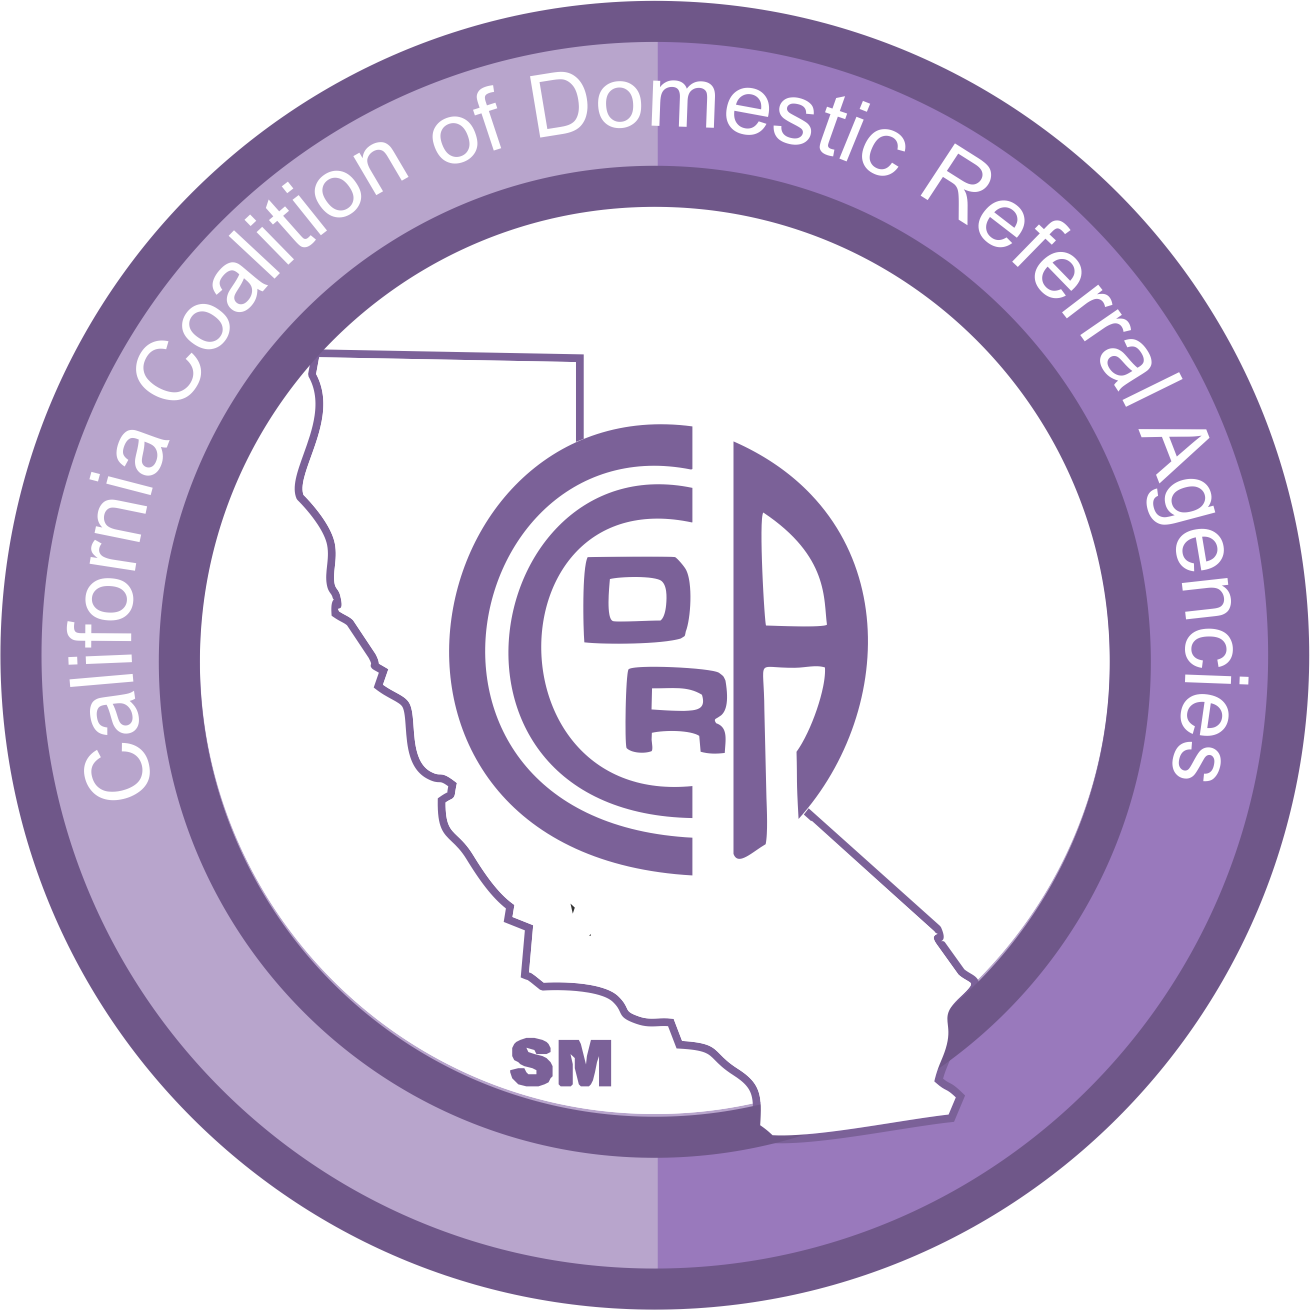 CCDRA Logo - California Coalition of Domestic Referral Agencies